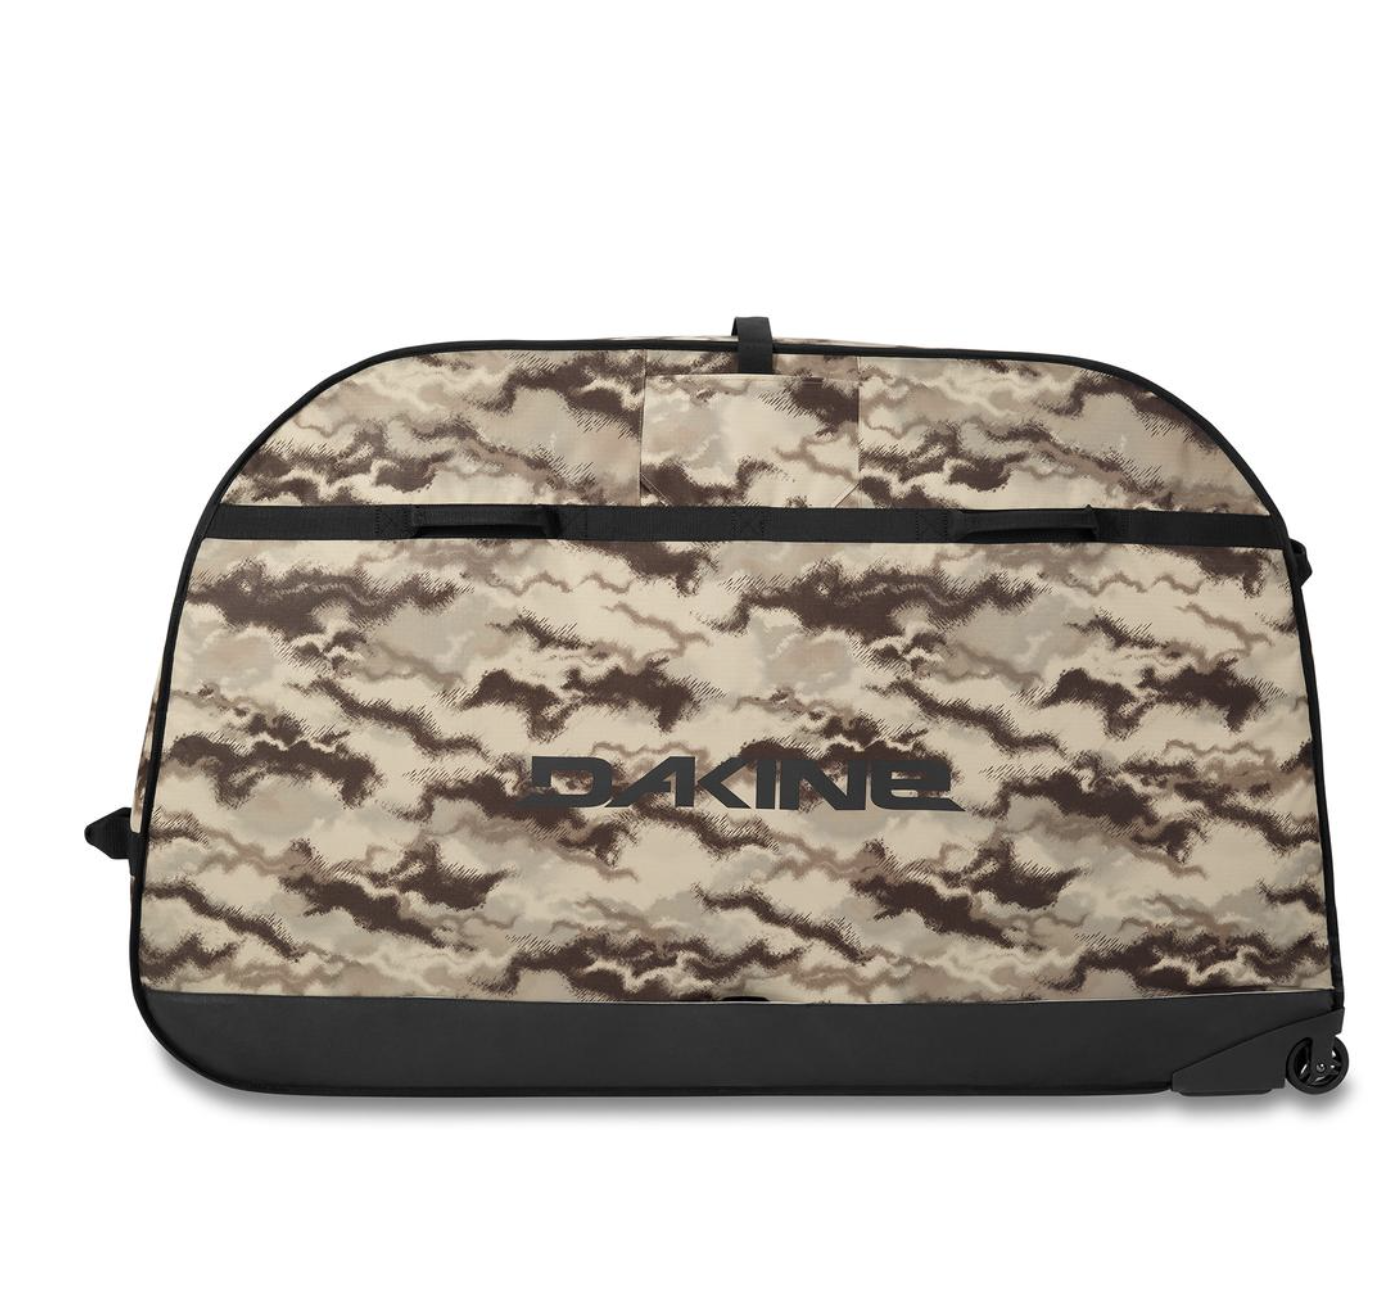 Dakine bike travel roller bag